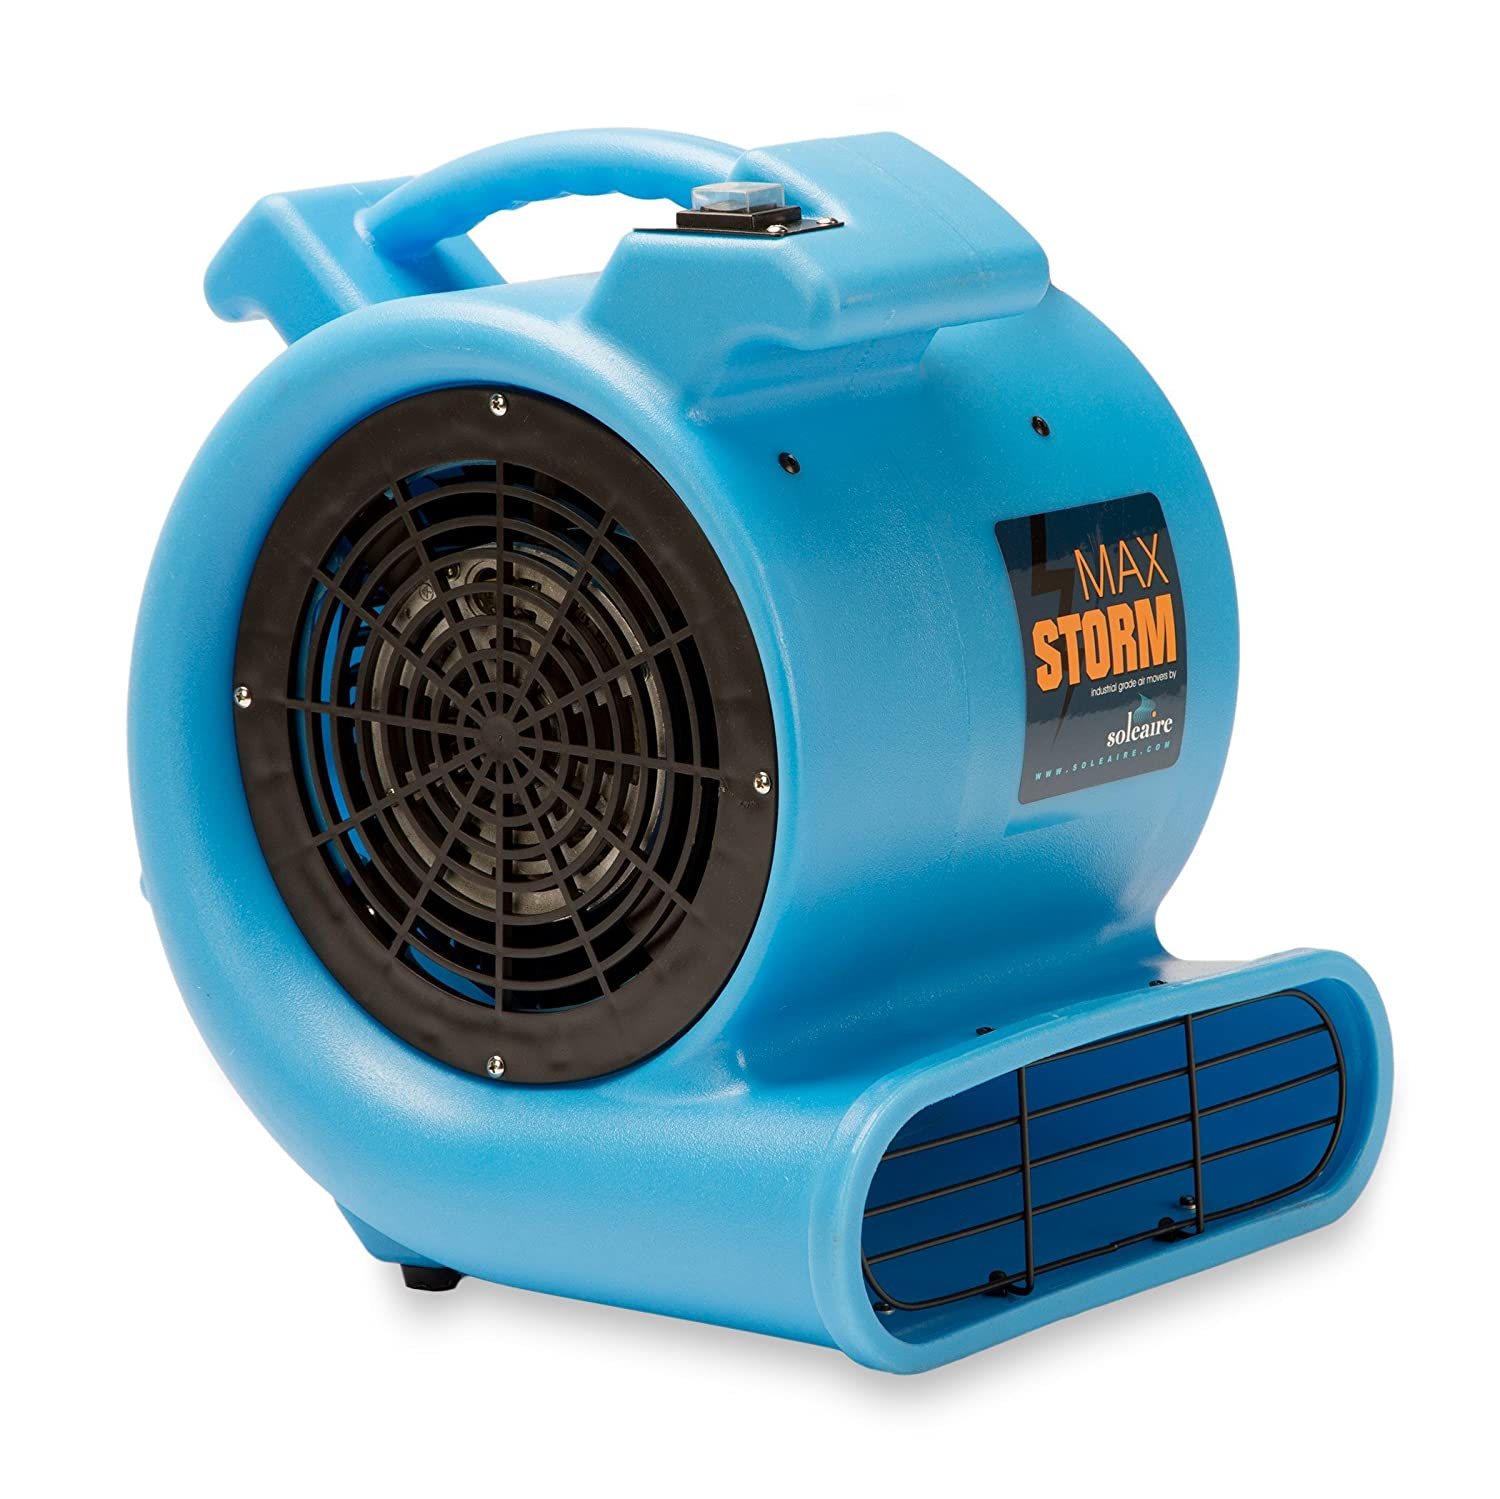 Soleaire Max Storm 1/2 HP Durable Lightweight Air Mover Carpet Dryer Blower Floor Fan for Pro Janitorial, Blue (Renewed)